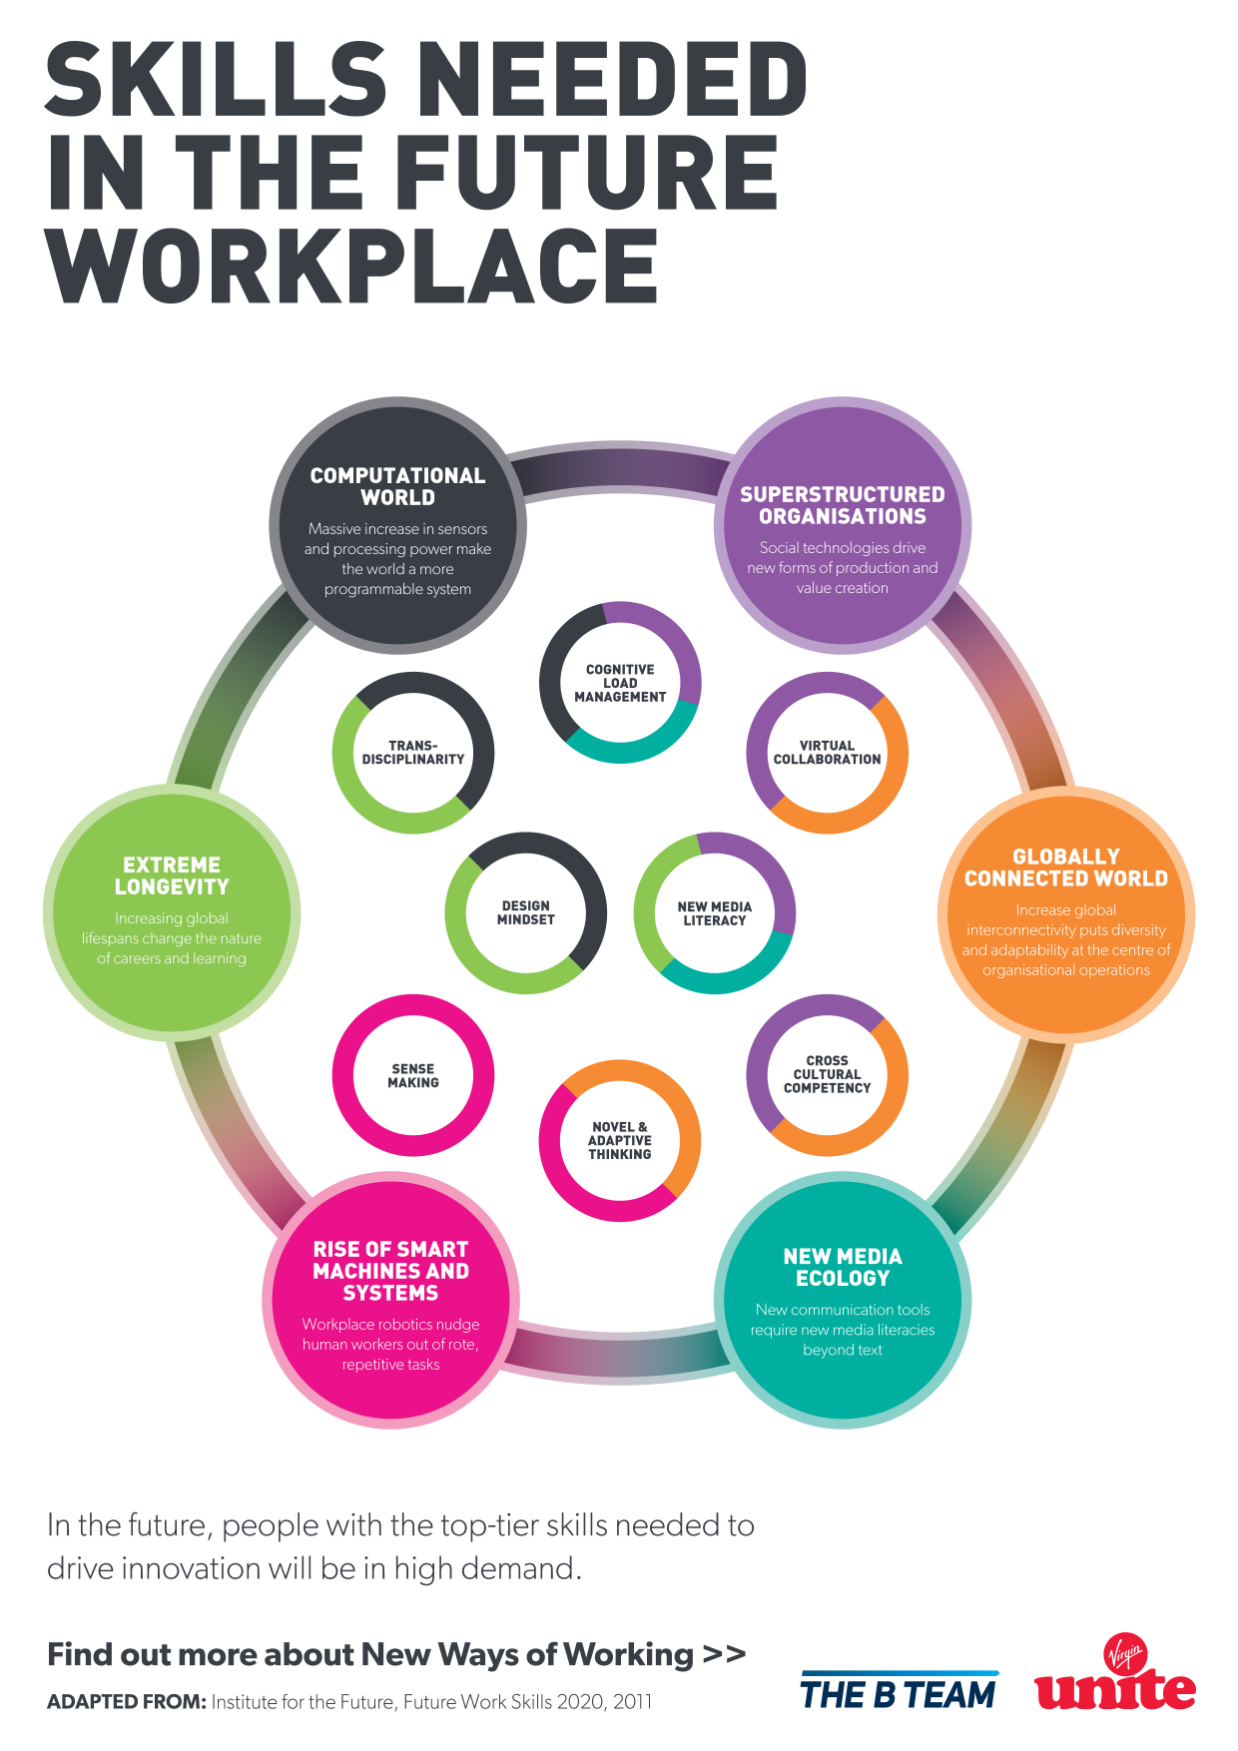 Colourful diagram showing which skills will be needed  in the future workplace